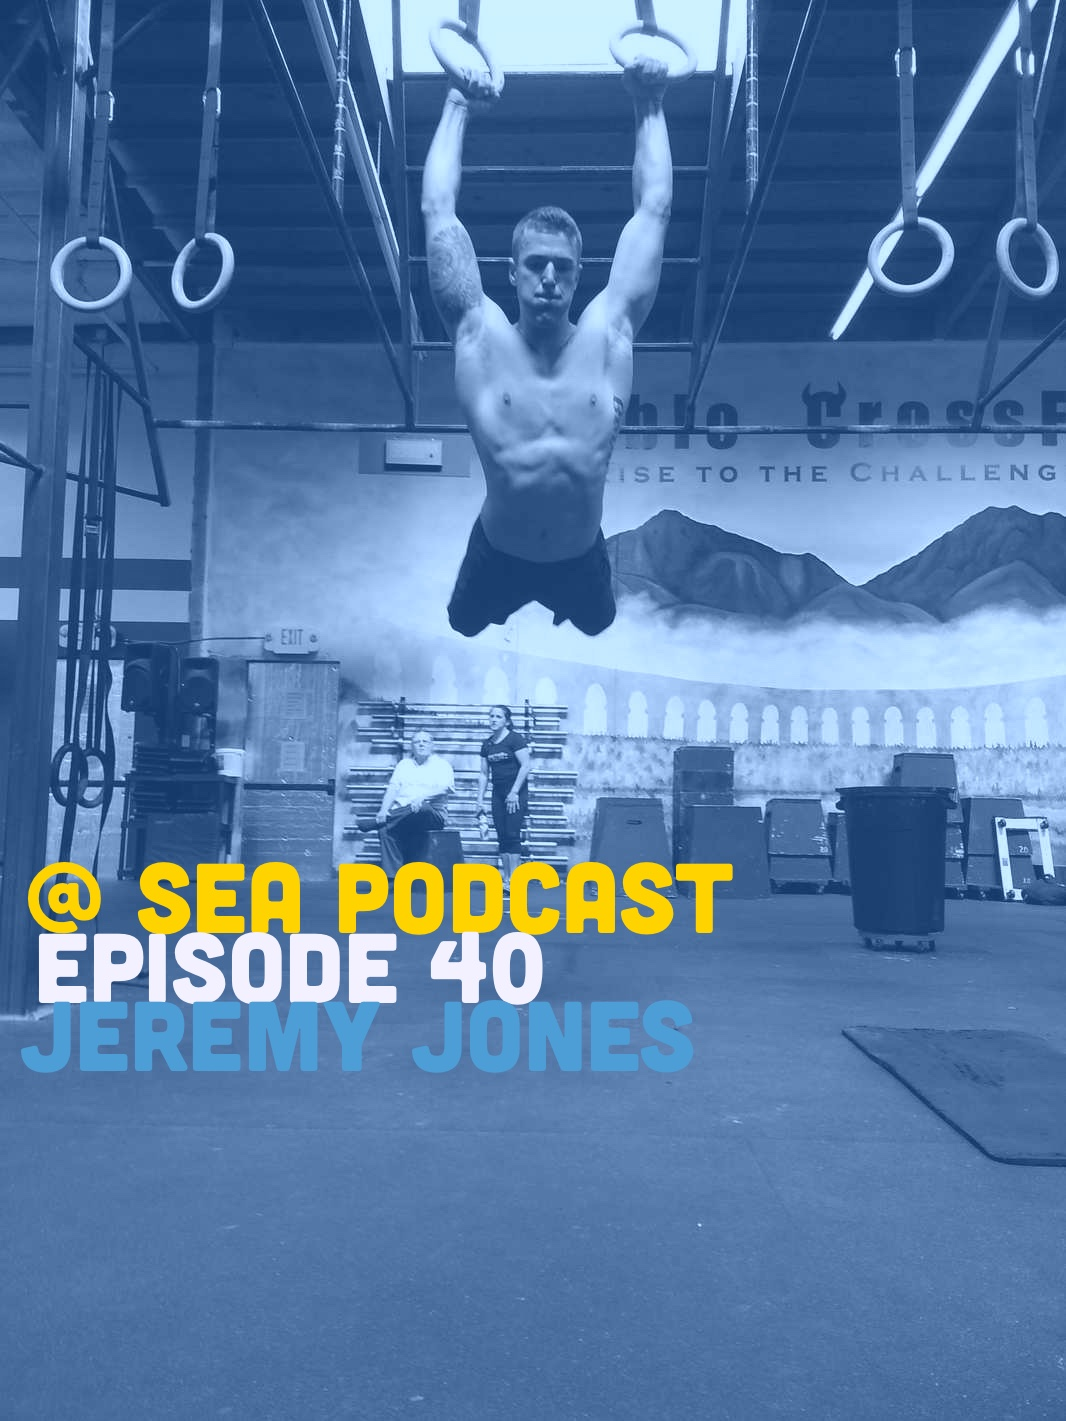 @ Sea Podcast #40: Jeremy Jones